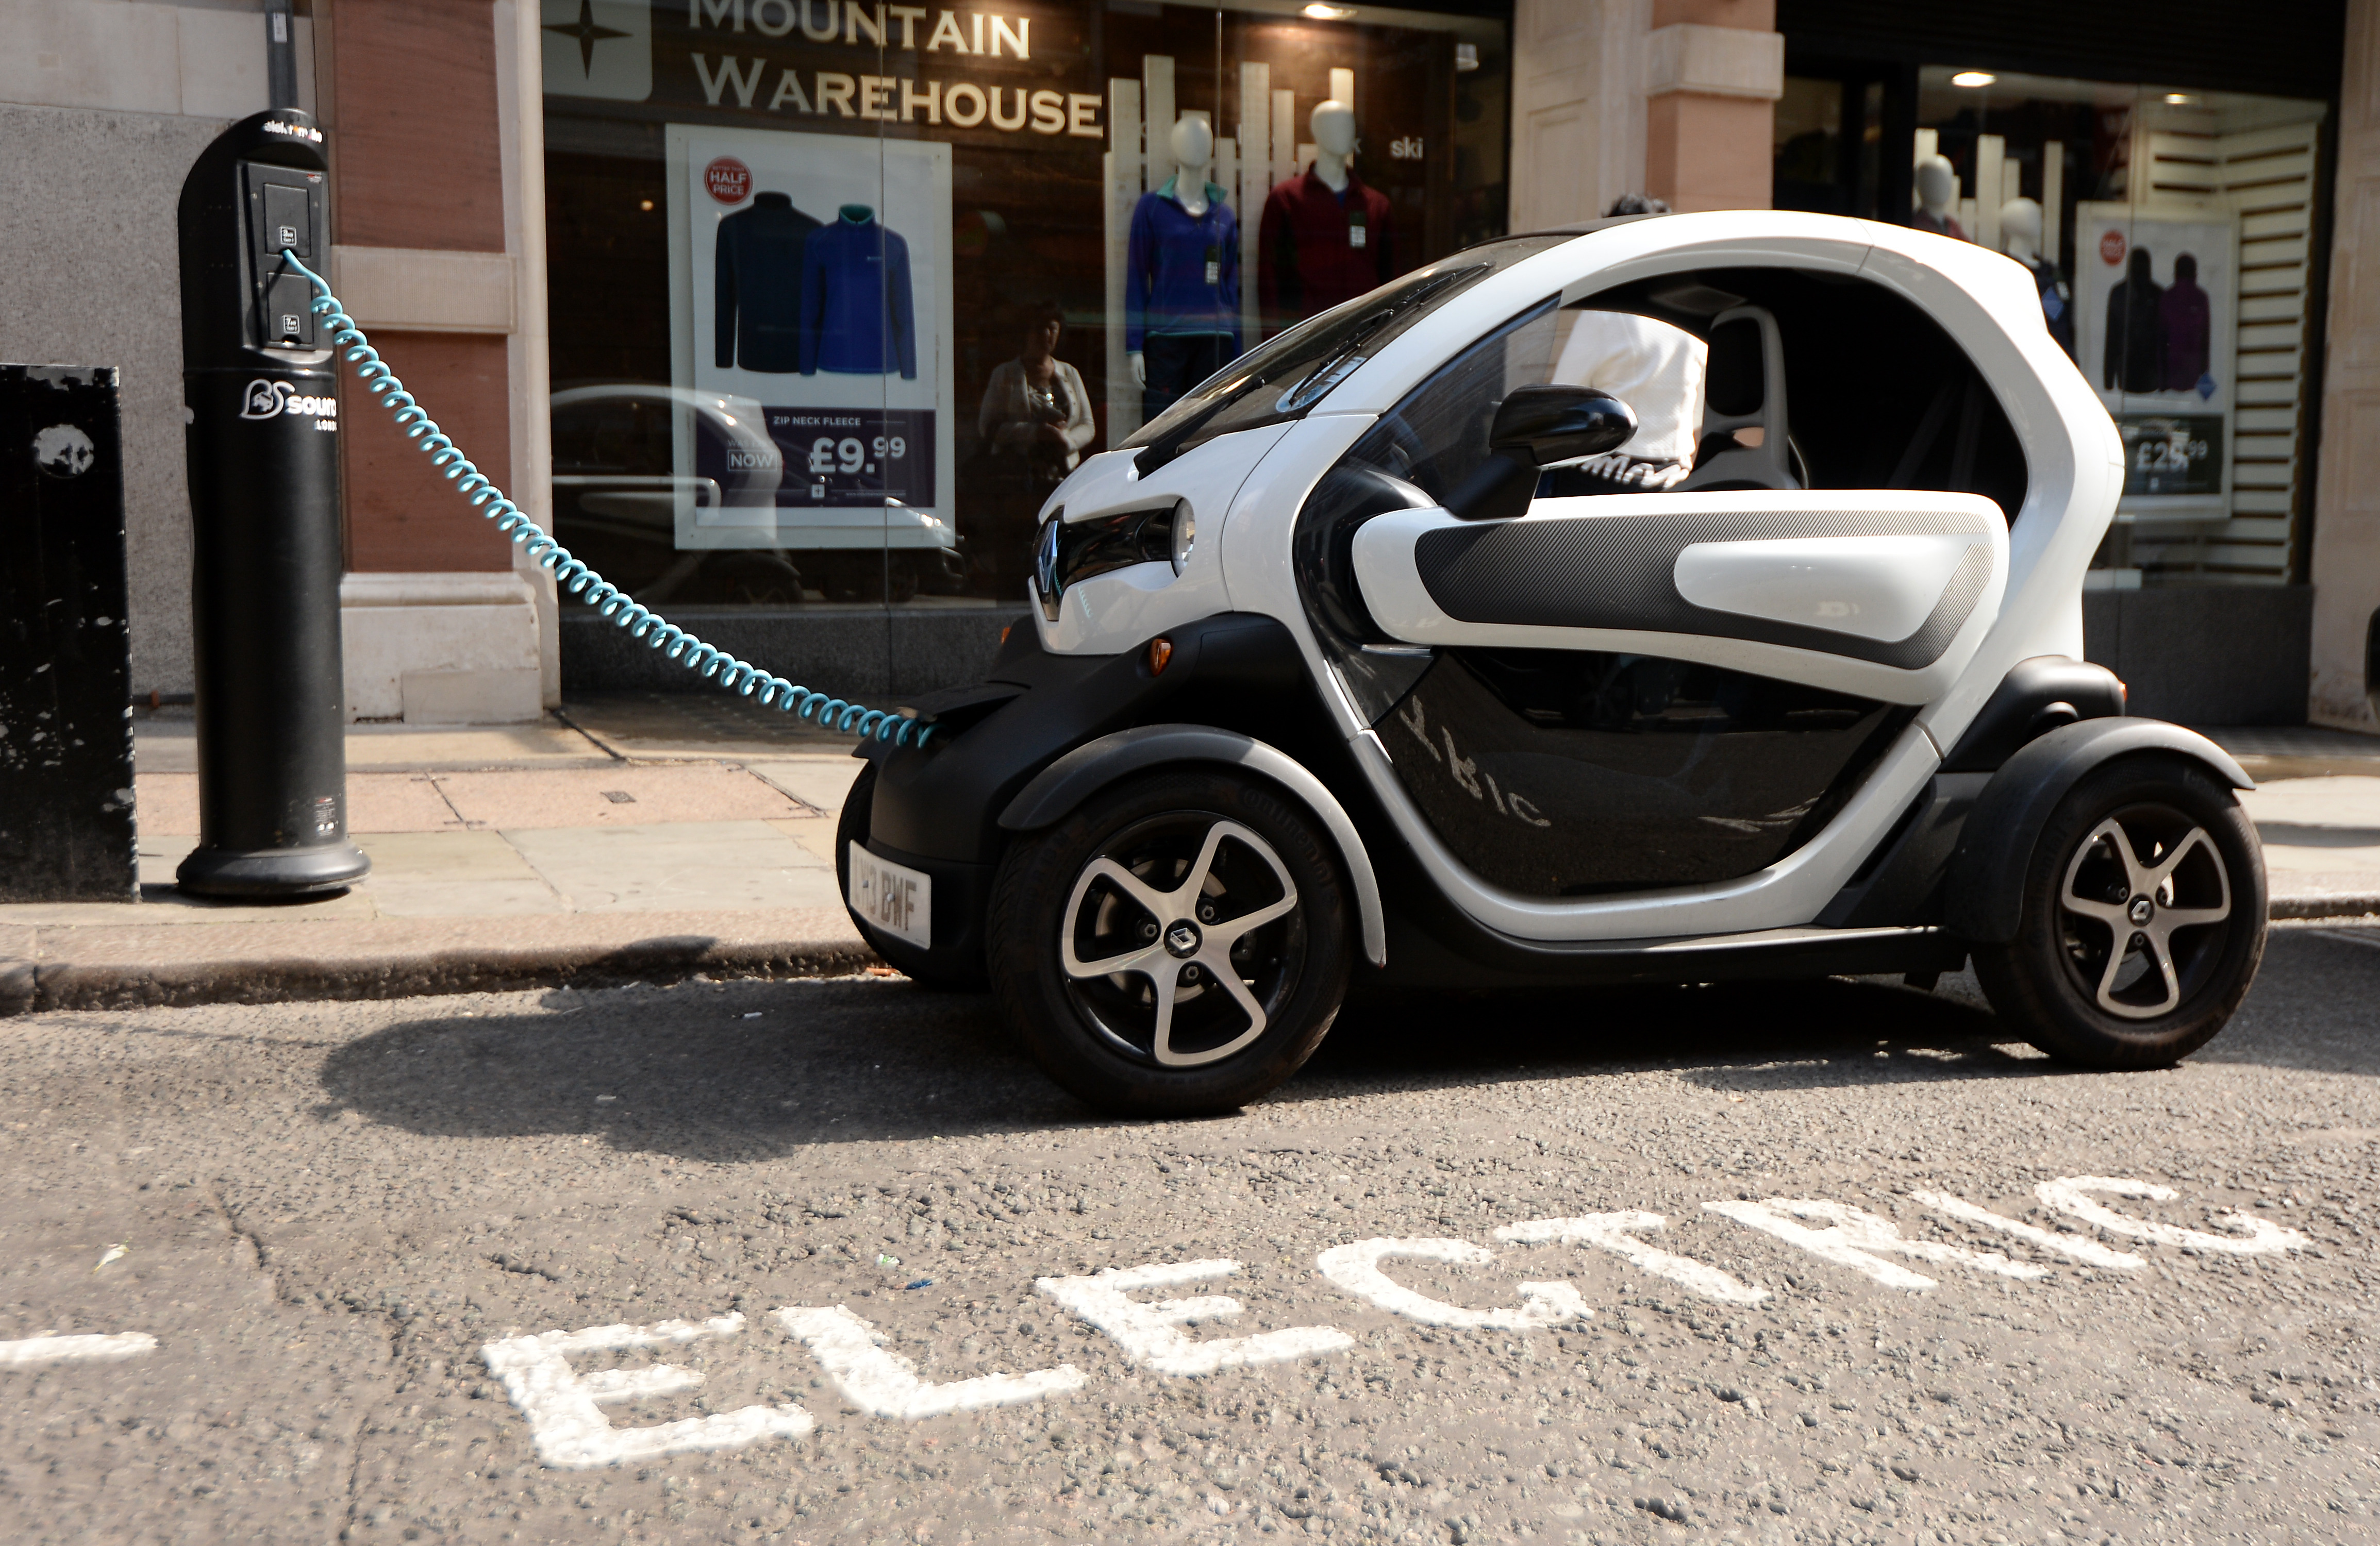 Discount City Parking For Electric Low Emissions Cars